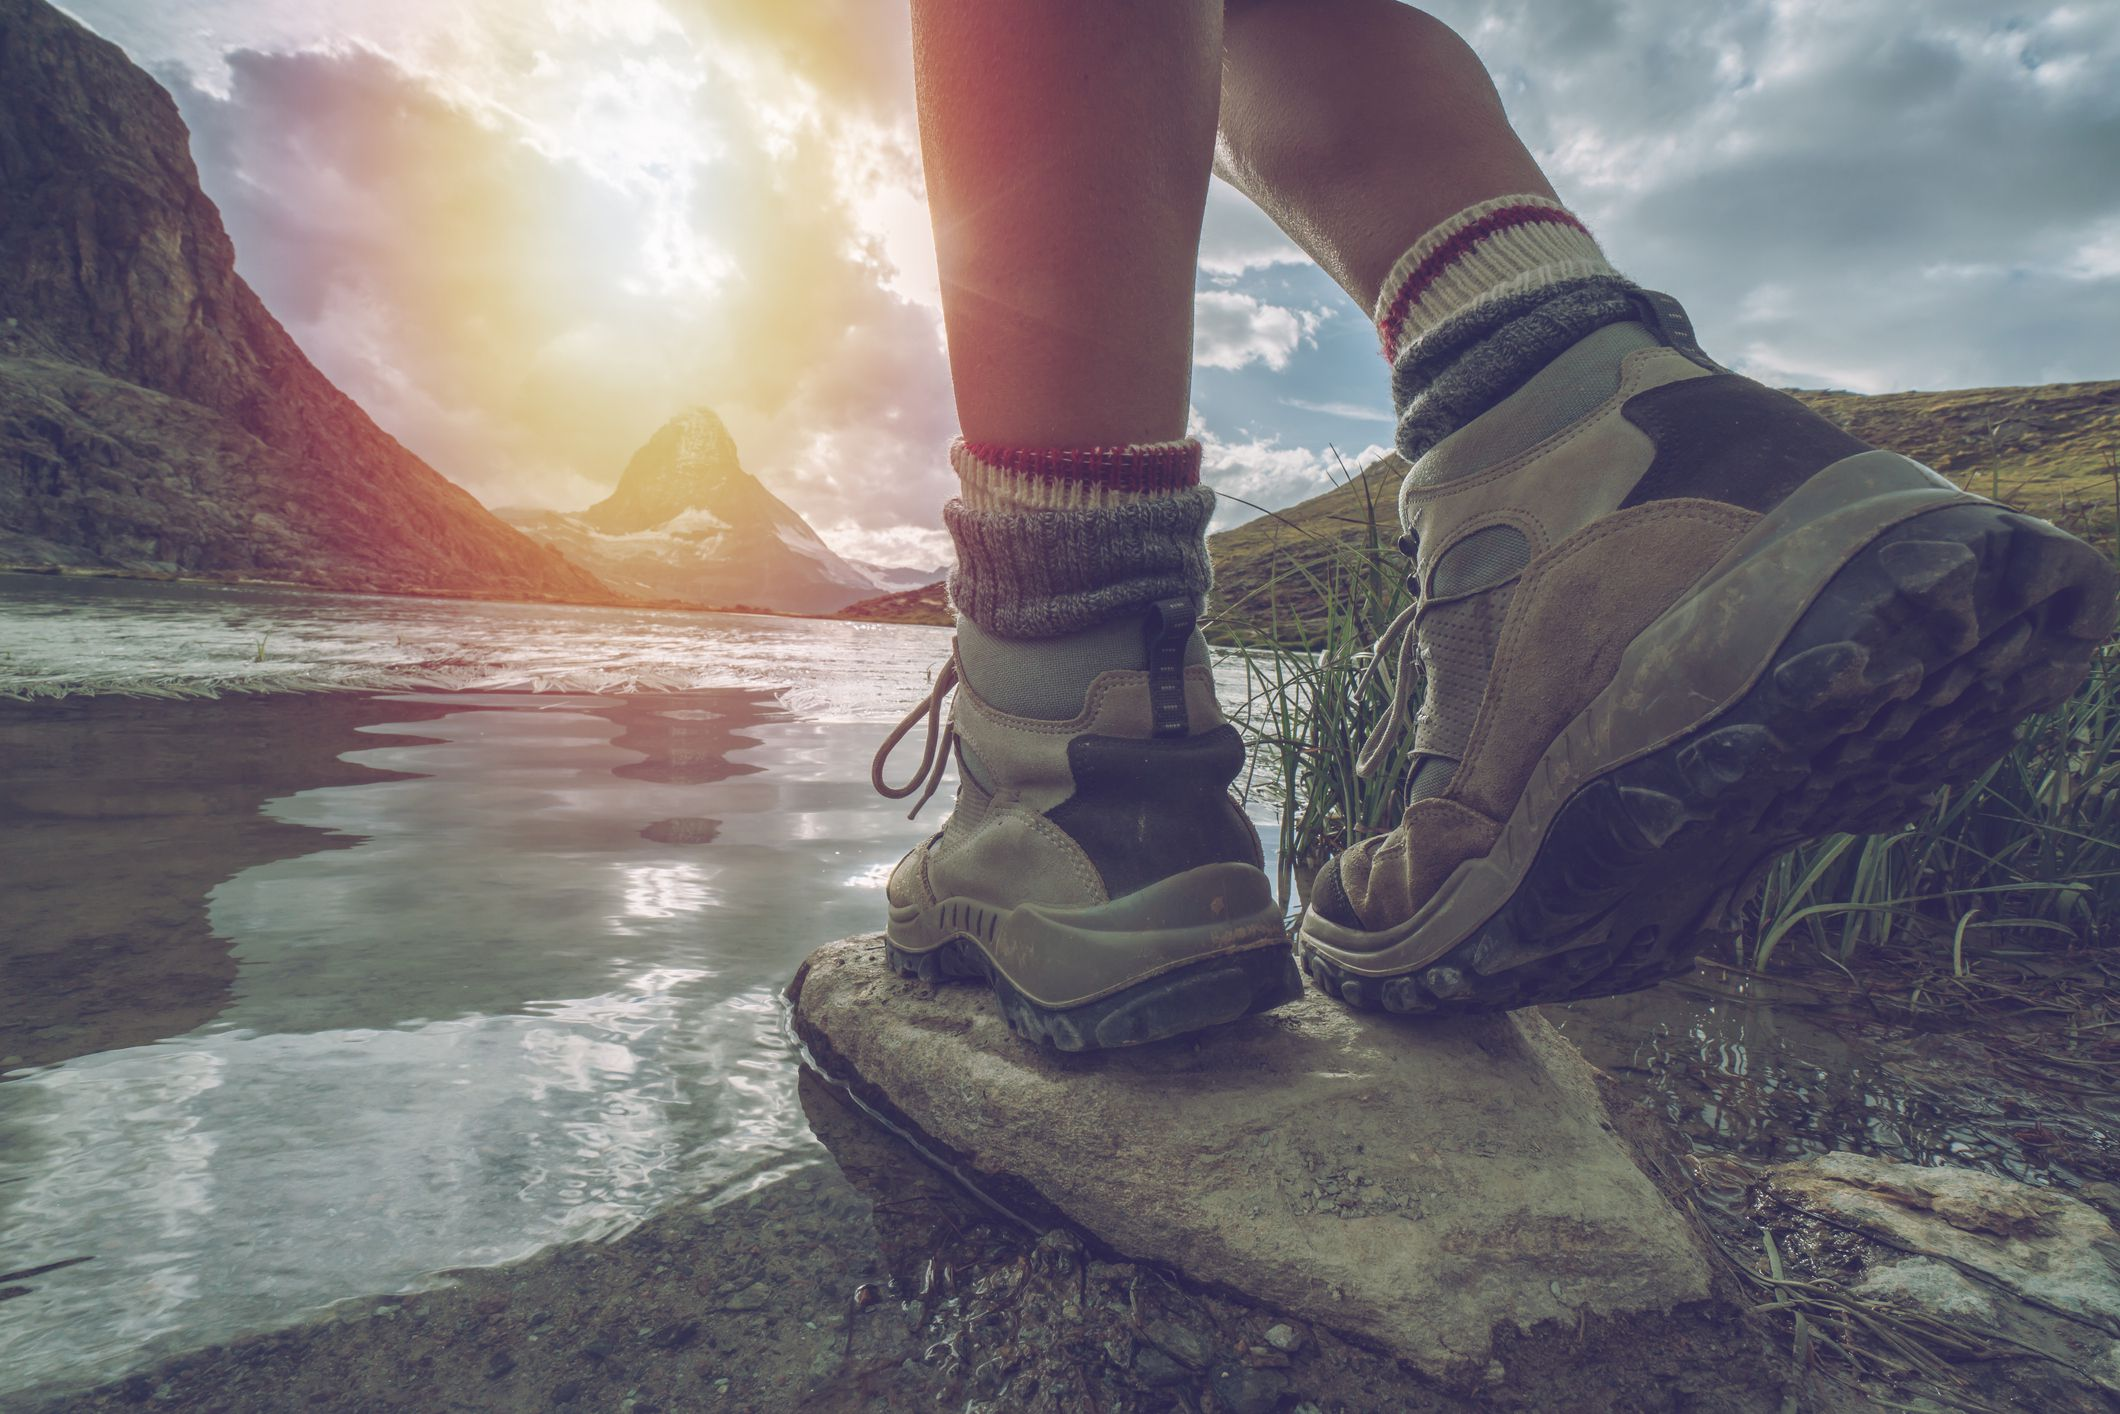 fbaf8a42aaf The 8 Best Women's Hiking Boots of 2019